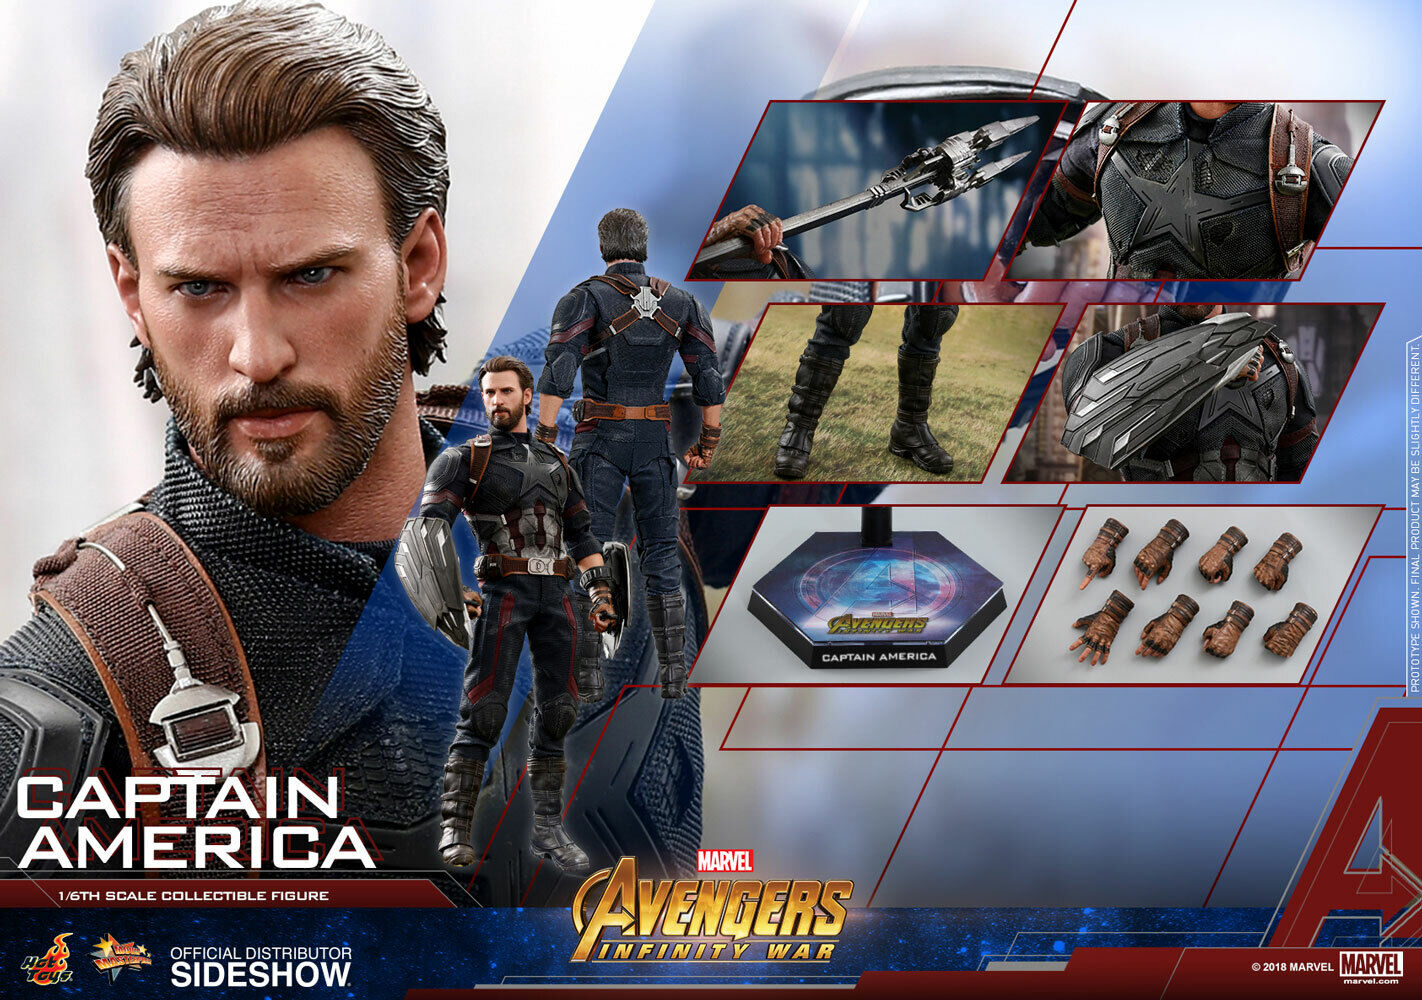 MARVEL Captain Captain Captain America Collector Edit Action Figure 1 6 Hot Toys Sideshow MMS480 847bad